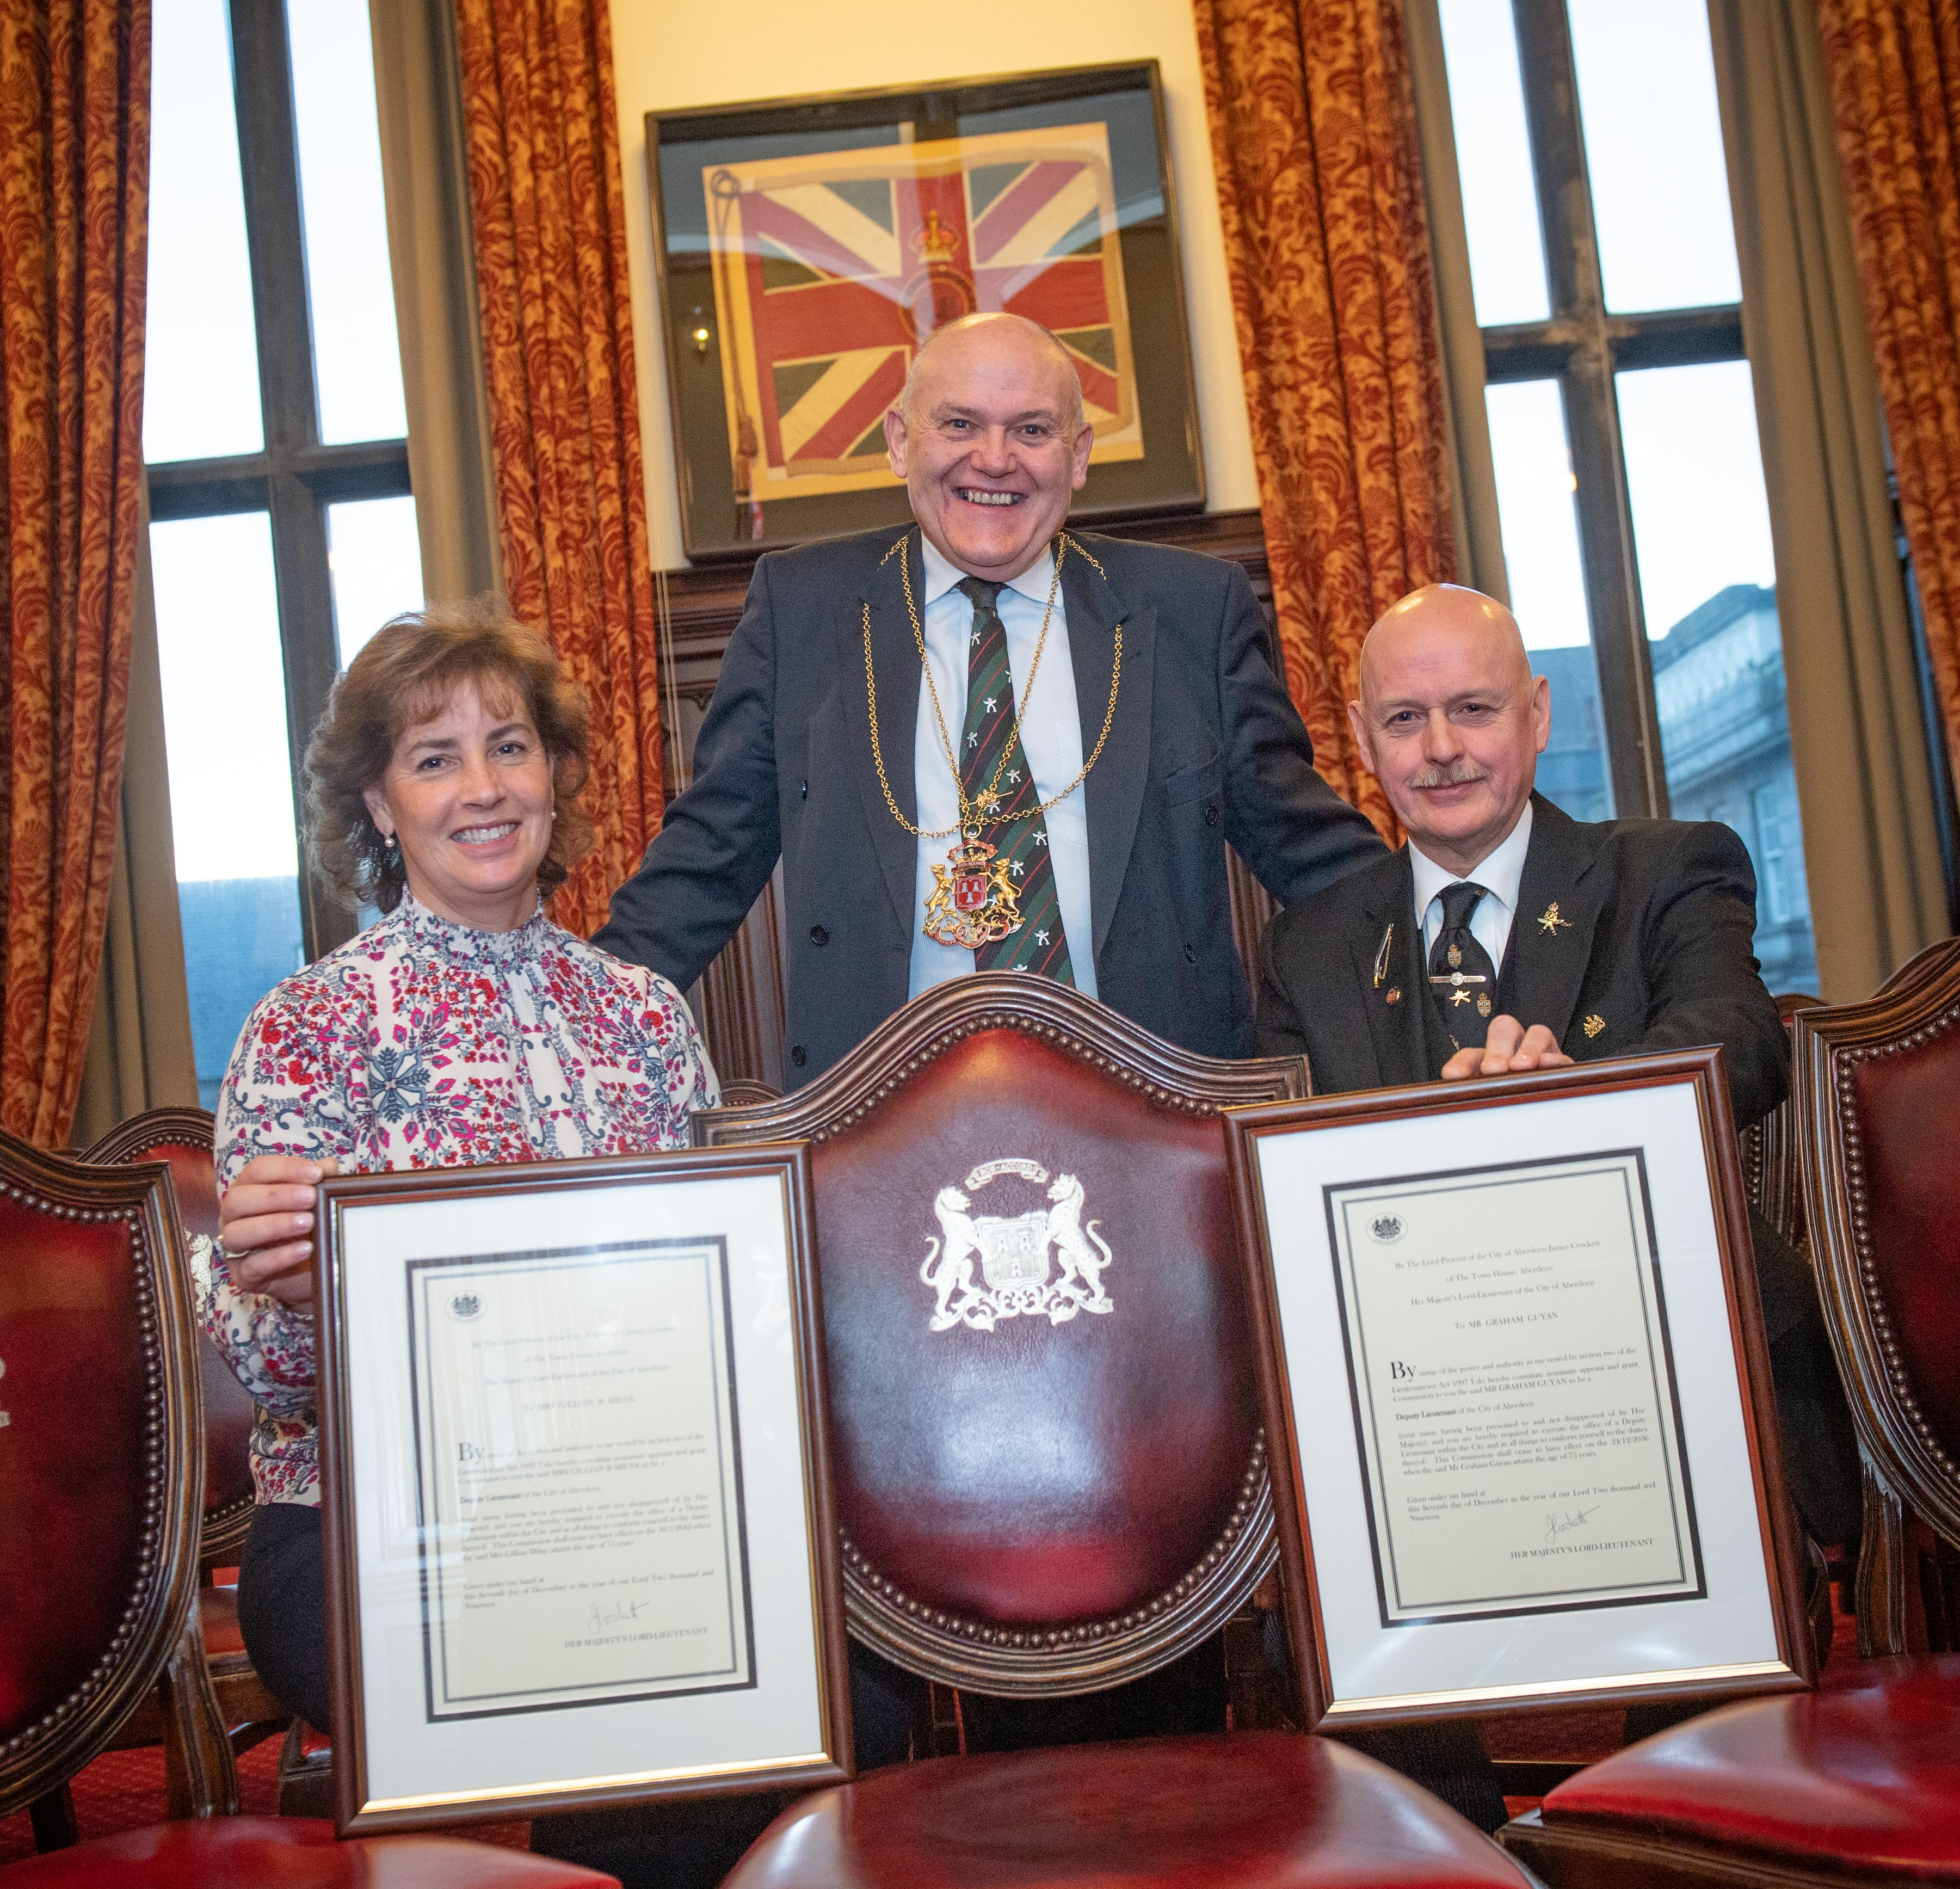 Aberdeen , Scotland, Monday, 16 December  2019   Civic Reception at Aberdeen Town Hall celebrating the Commissioning of two new Deputy Lieutenants Gillian Milne and Graham Guyan   Picture by Abermedia / Michal Wachucik